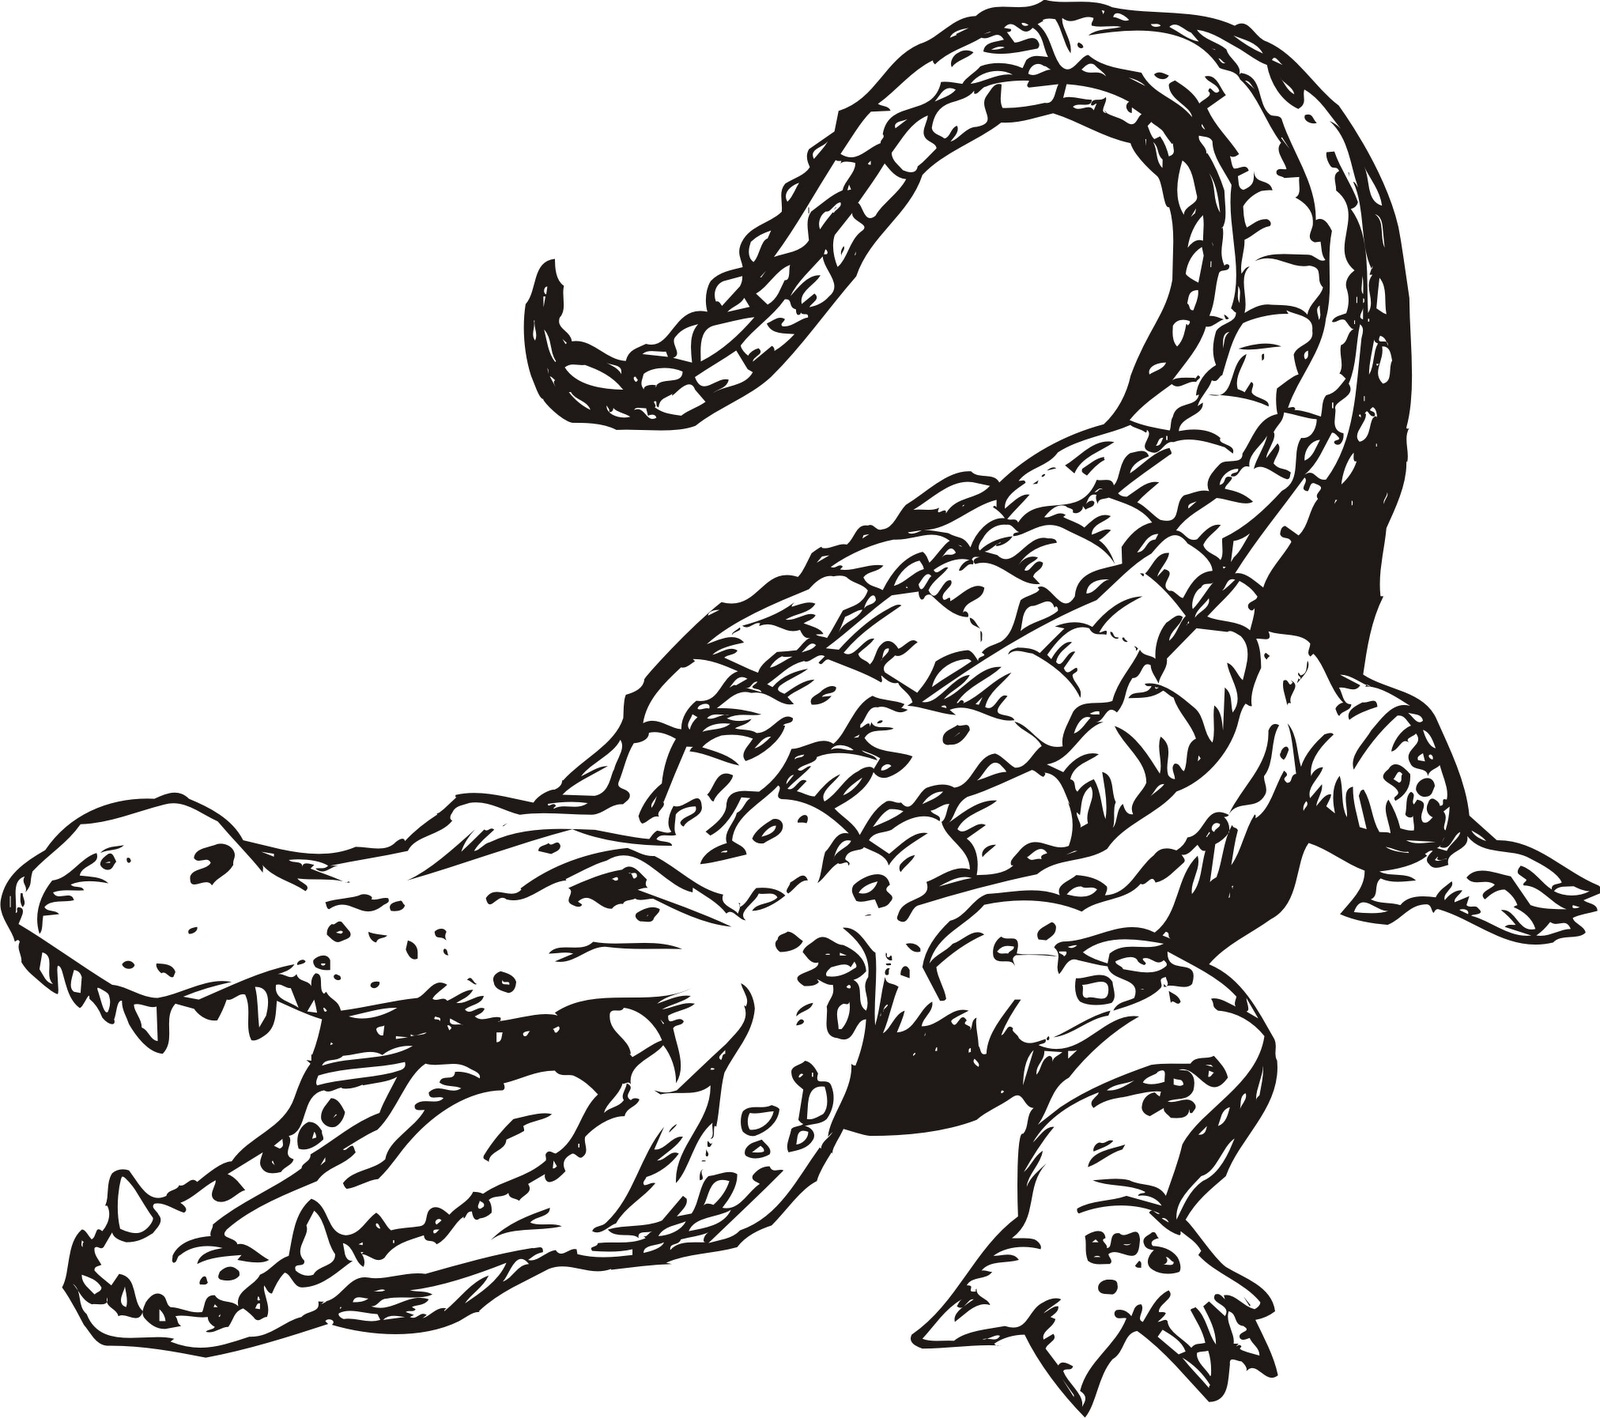 1600x1418 How To Draw An Alligator With Its Mouth Open